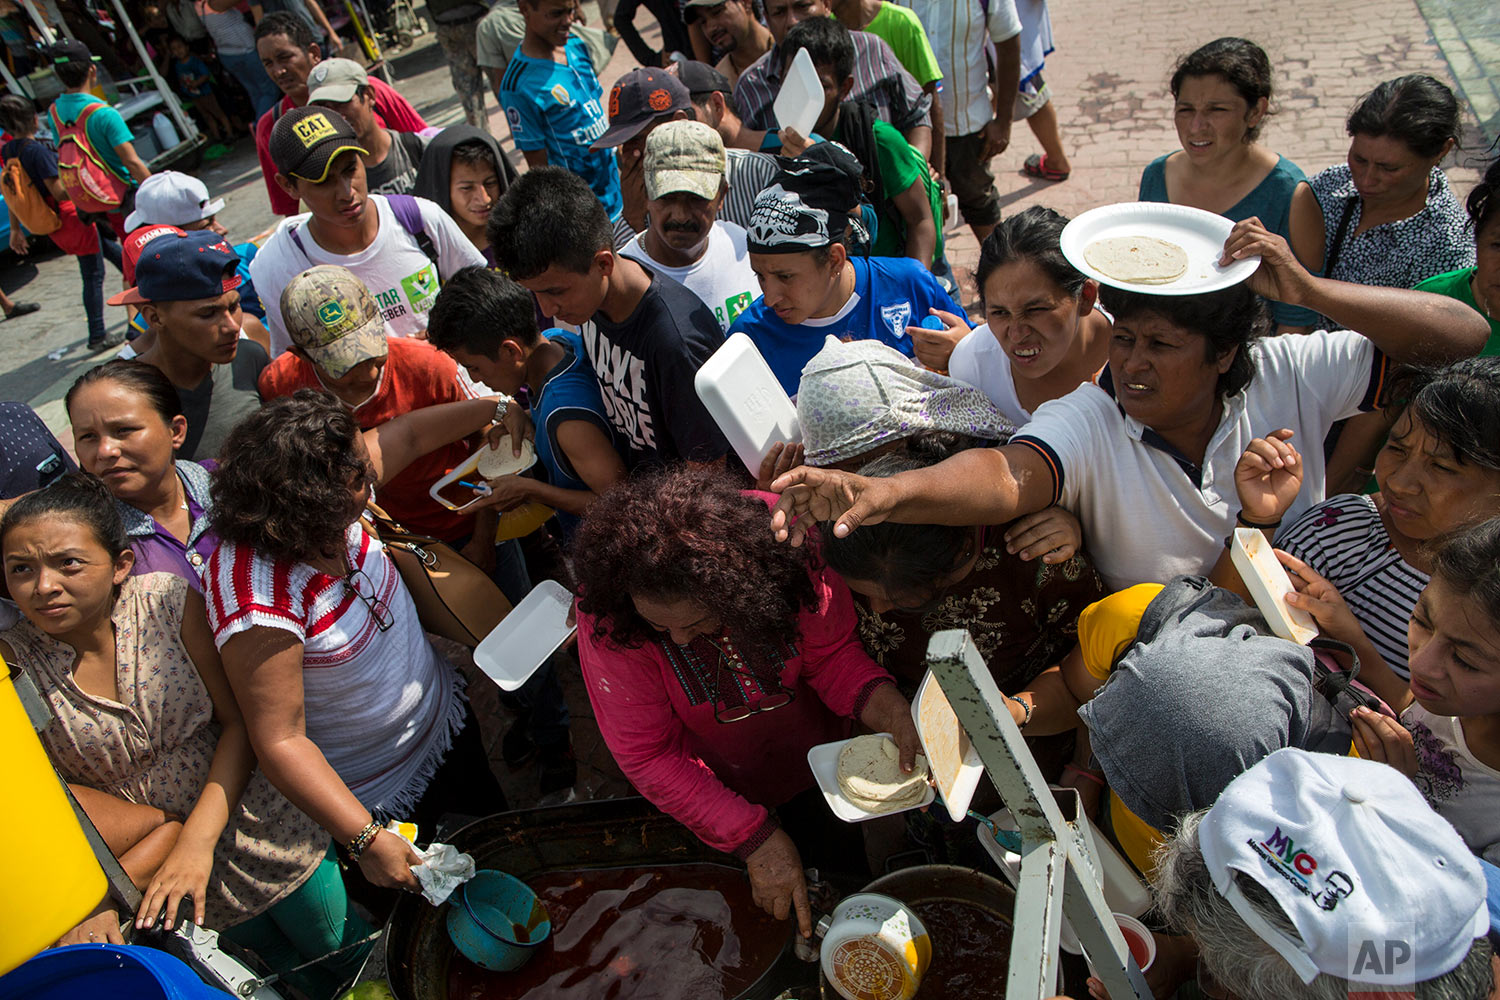 Migrants receive donated food at a makeshift camp set up by a caravan of Central American migrants traveling to the U.S, in Mapastepec, Mexico, Wednesday, Oct. 24, 2018. (AP Photo/Rodrigo Abd)